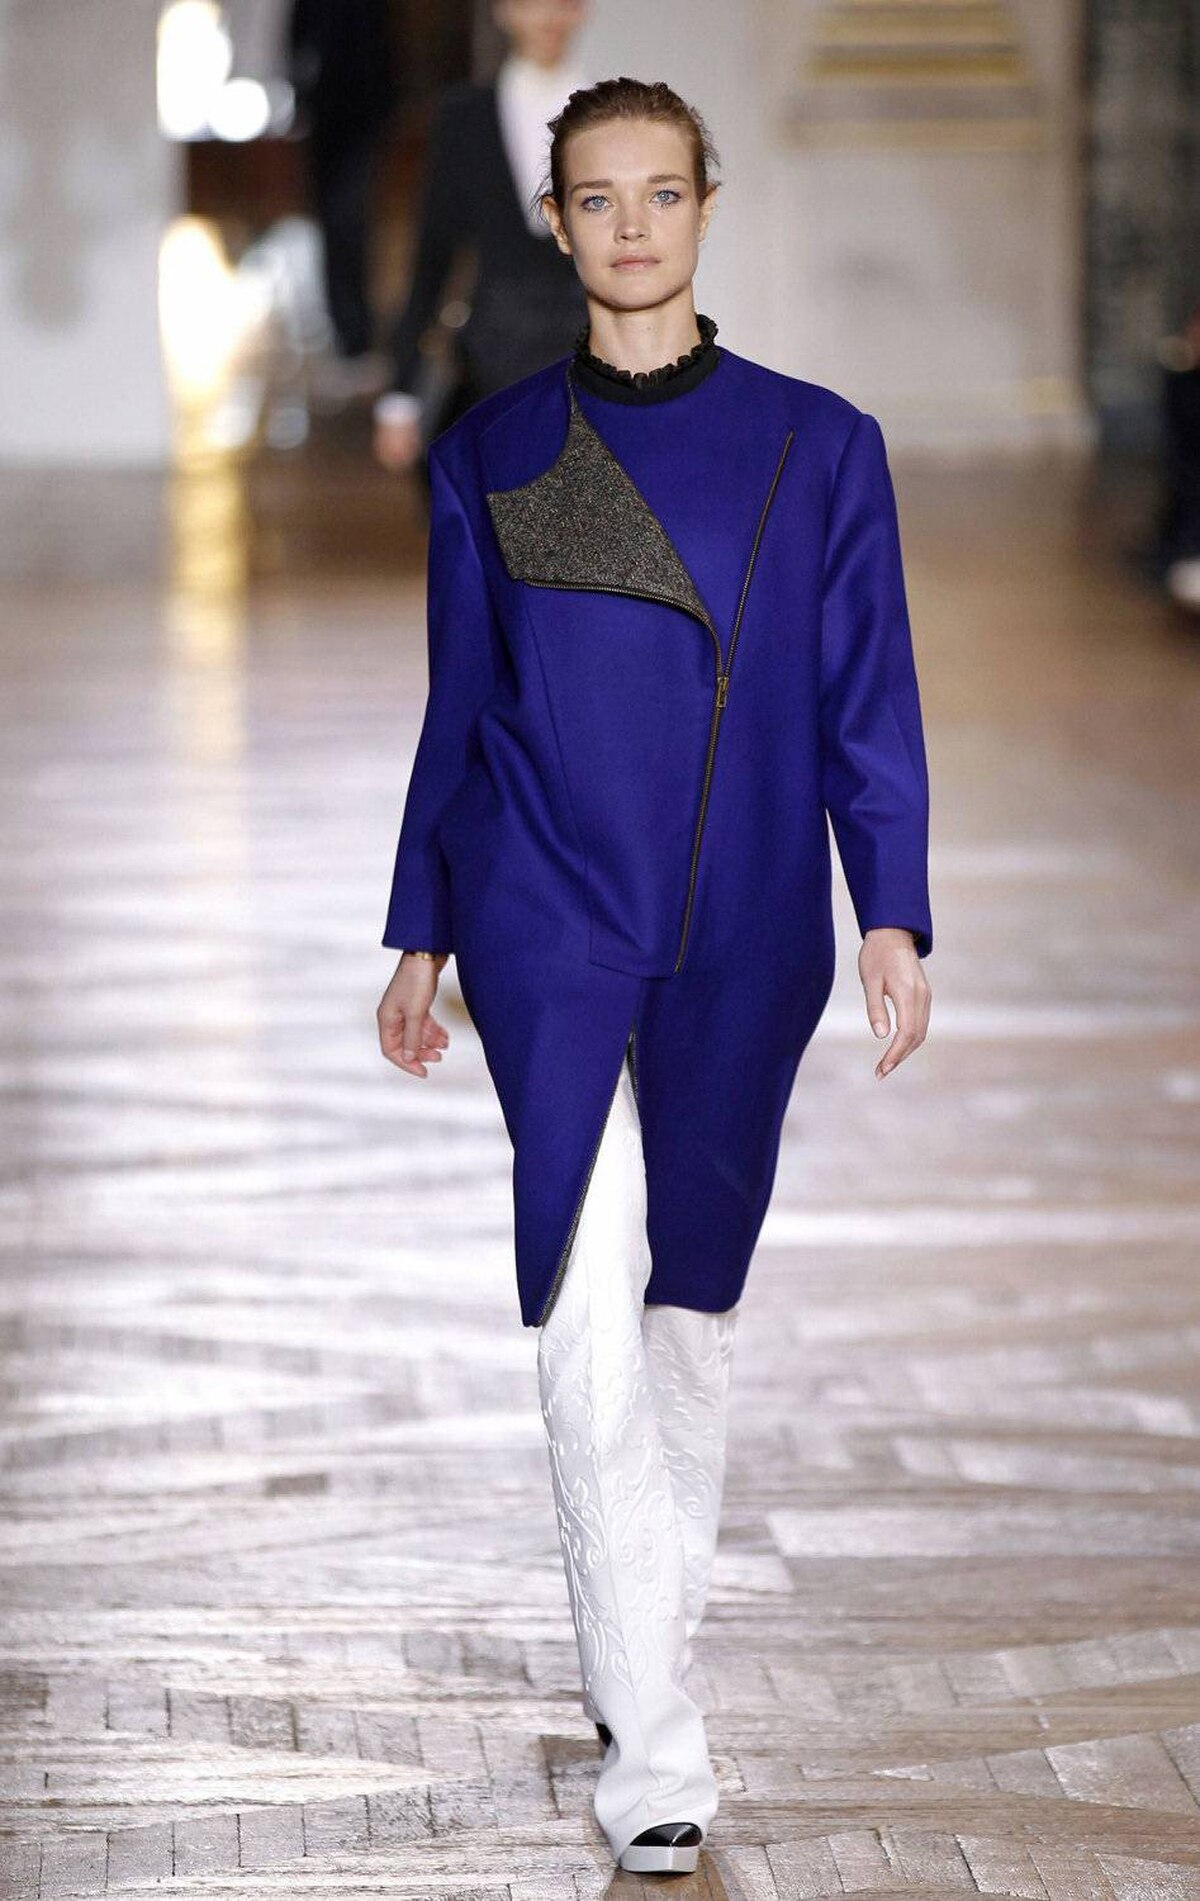 Meanwhile, McCartney sent out yet another strong collection, opening with an electric blue coat that that appears simple but is anything but. The tapered shape, diagonal zipper and trapezoidal lapel come together like a geometric equation.